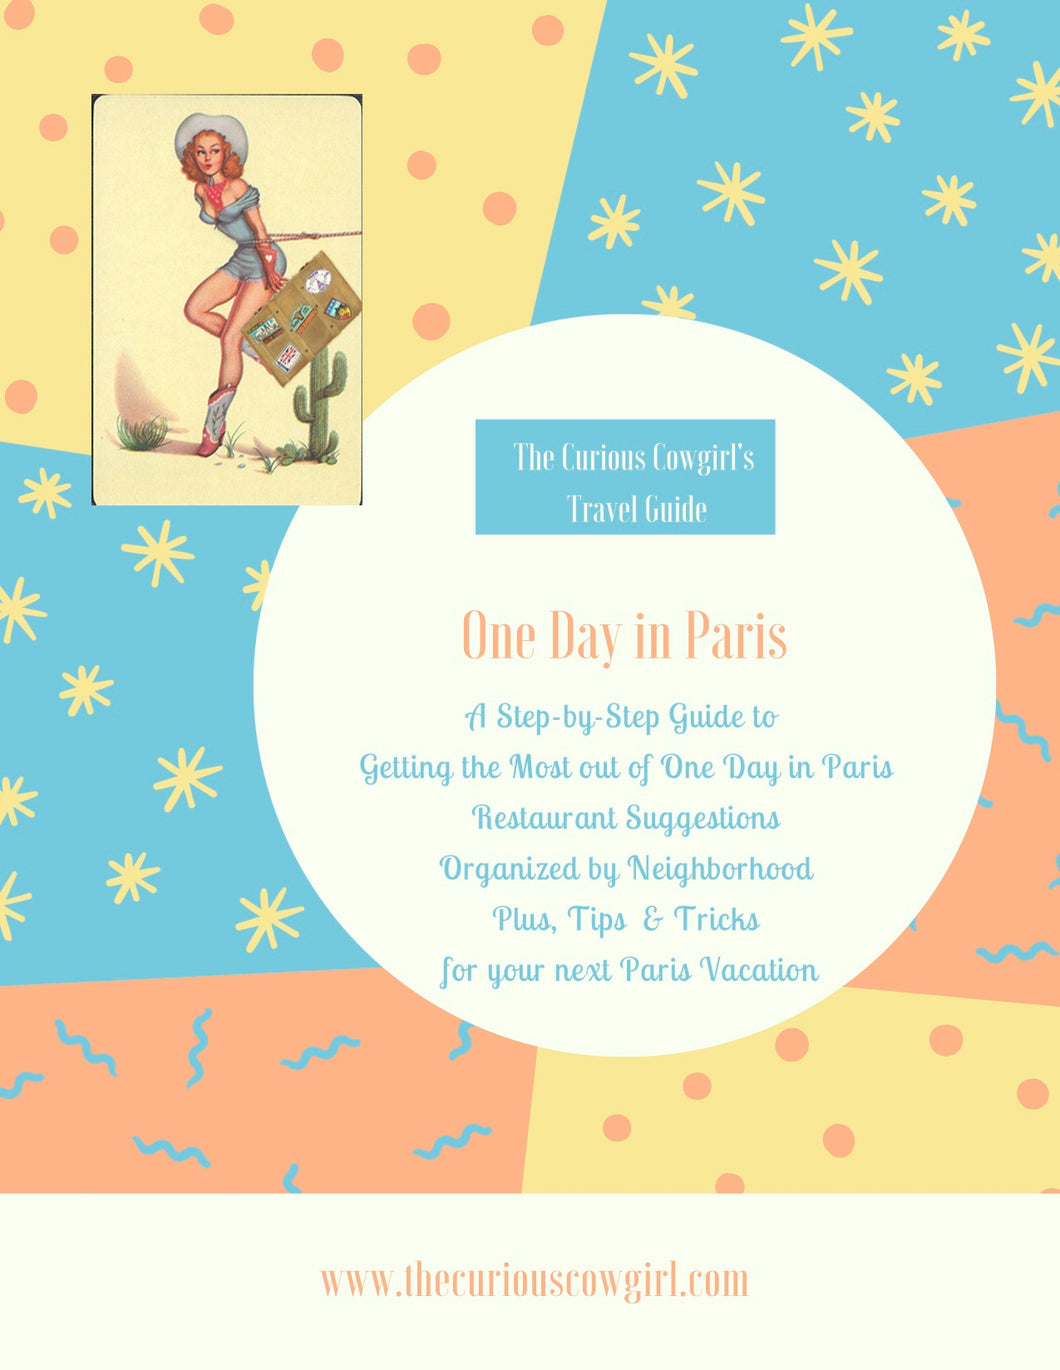 One Day in Paris Guide